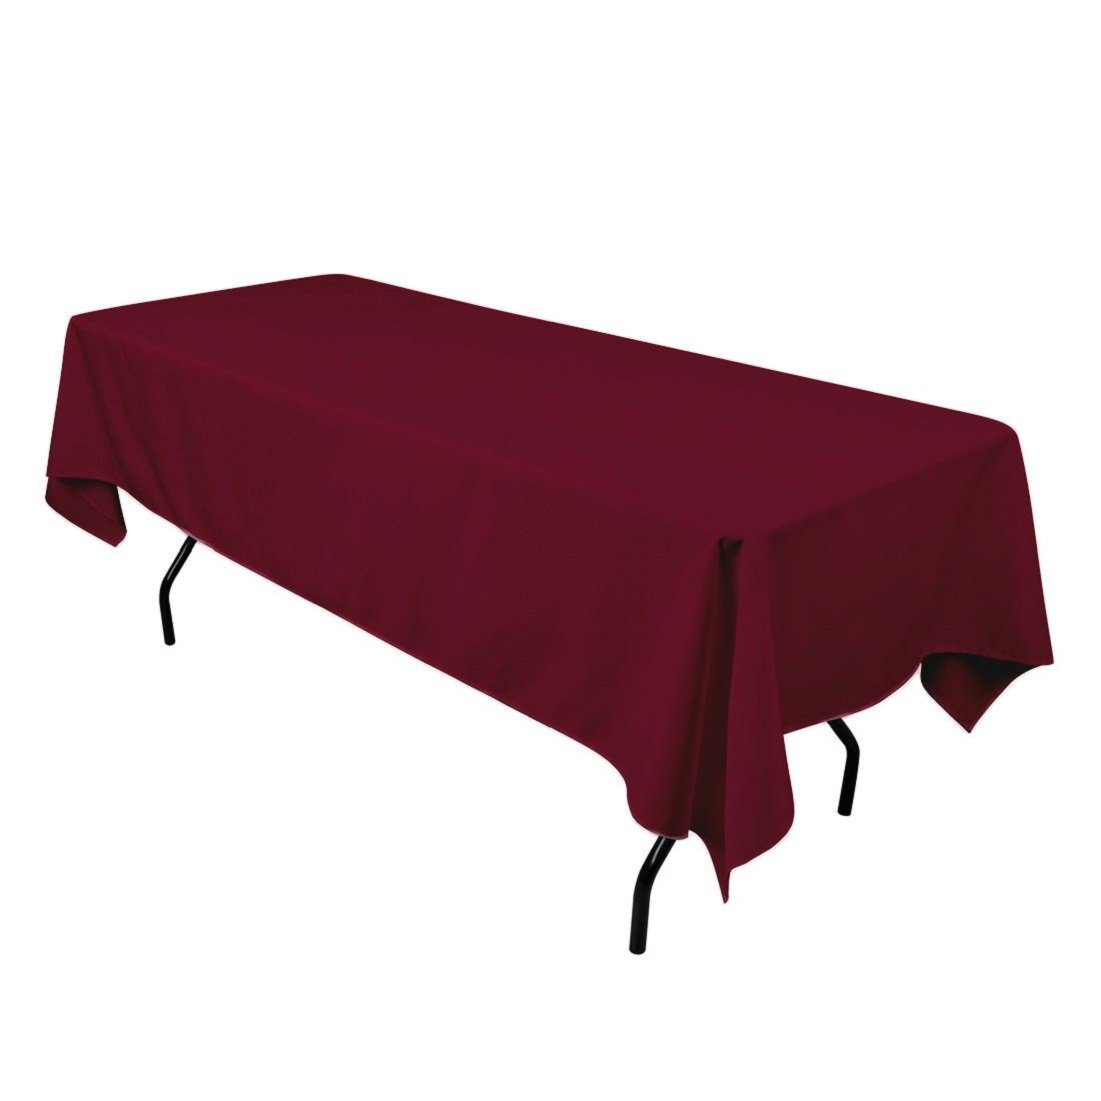 Wedding /& More GDMPRT60102B Holiday Dinner Gee Di Moda Rectangle Tablecloth 60 x 102 Inch Parties Great for Buffet Table Black Rectangular Table Cloth for 6 Foot Table in Washable Polyester